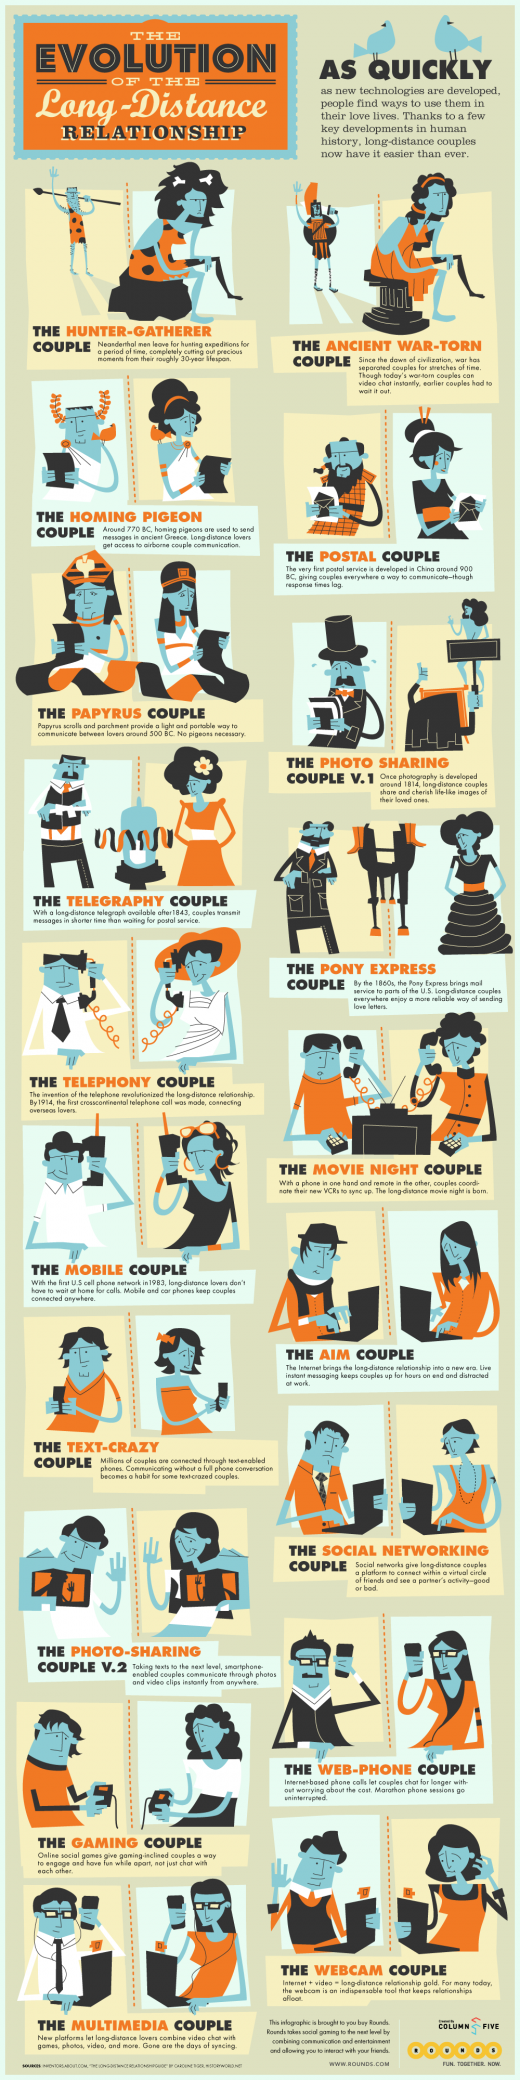 11.08.25 EvolutionRelationshipFINAL 520x2080 The evolution of long distance relationships in social media [Infographic]